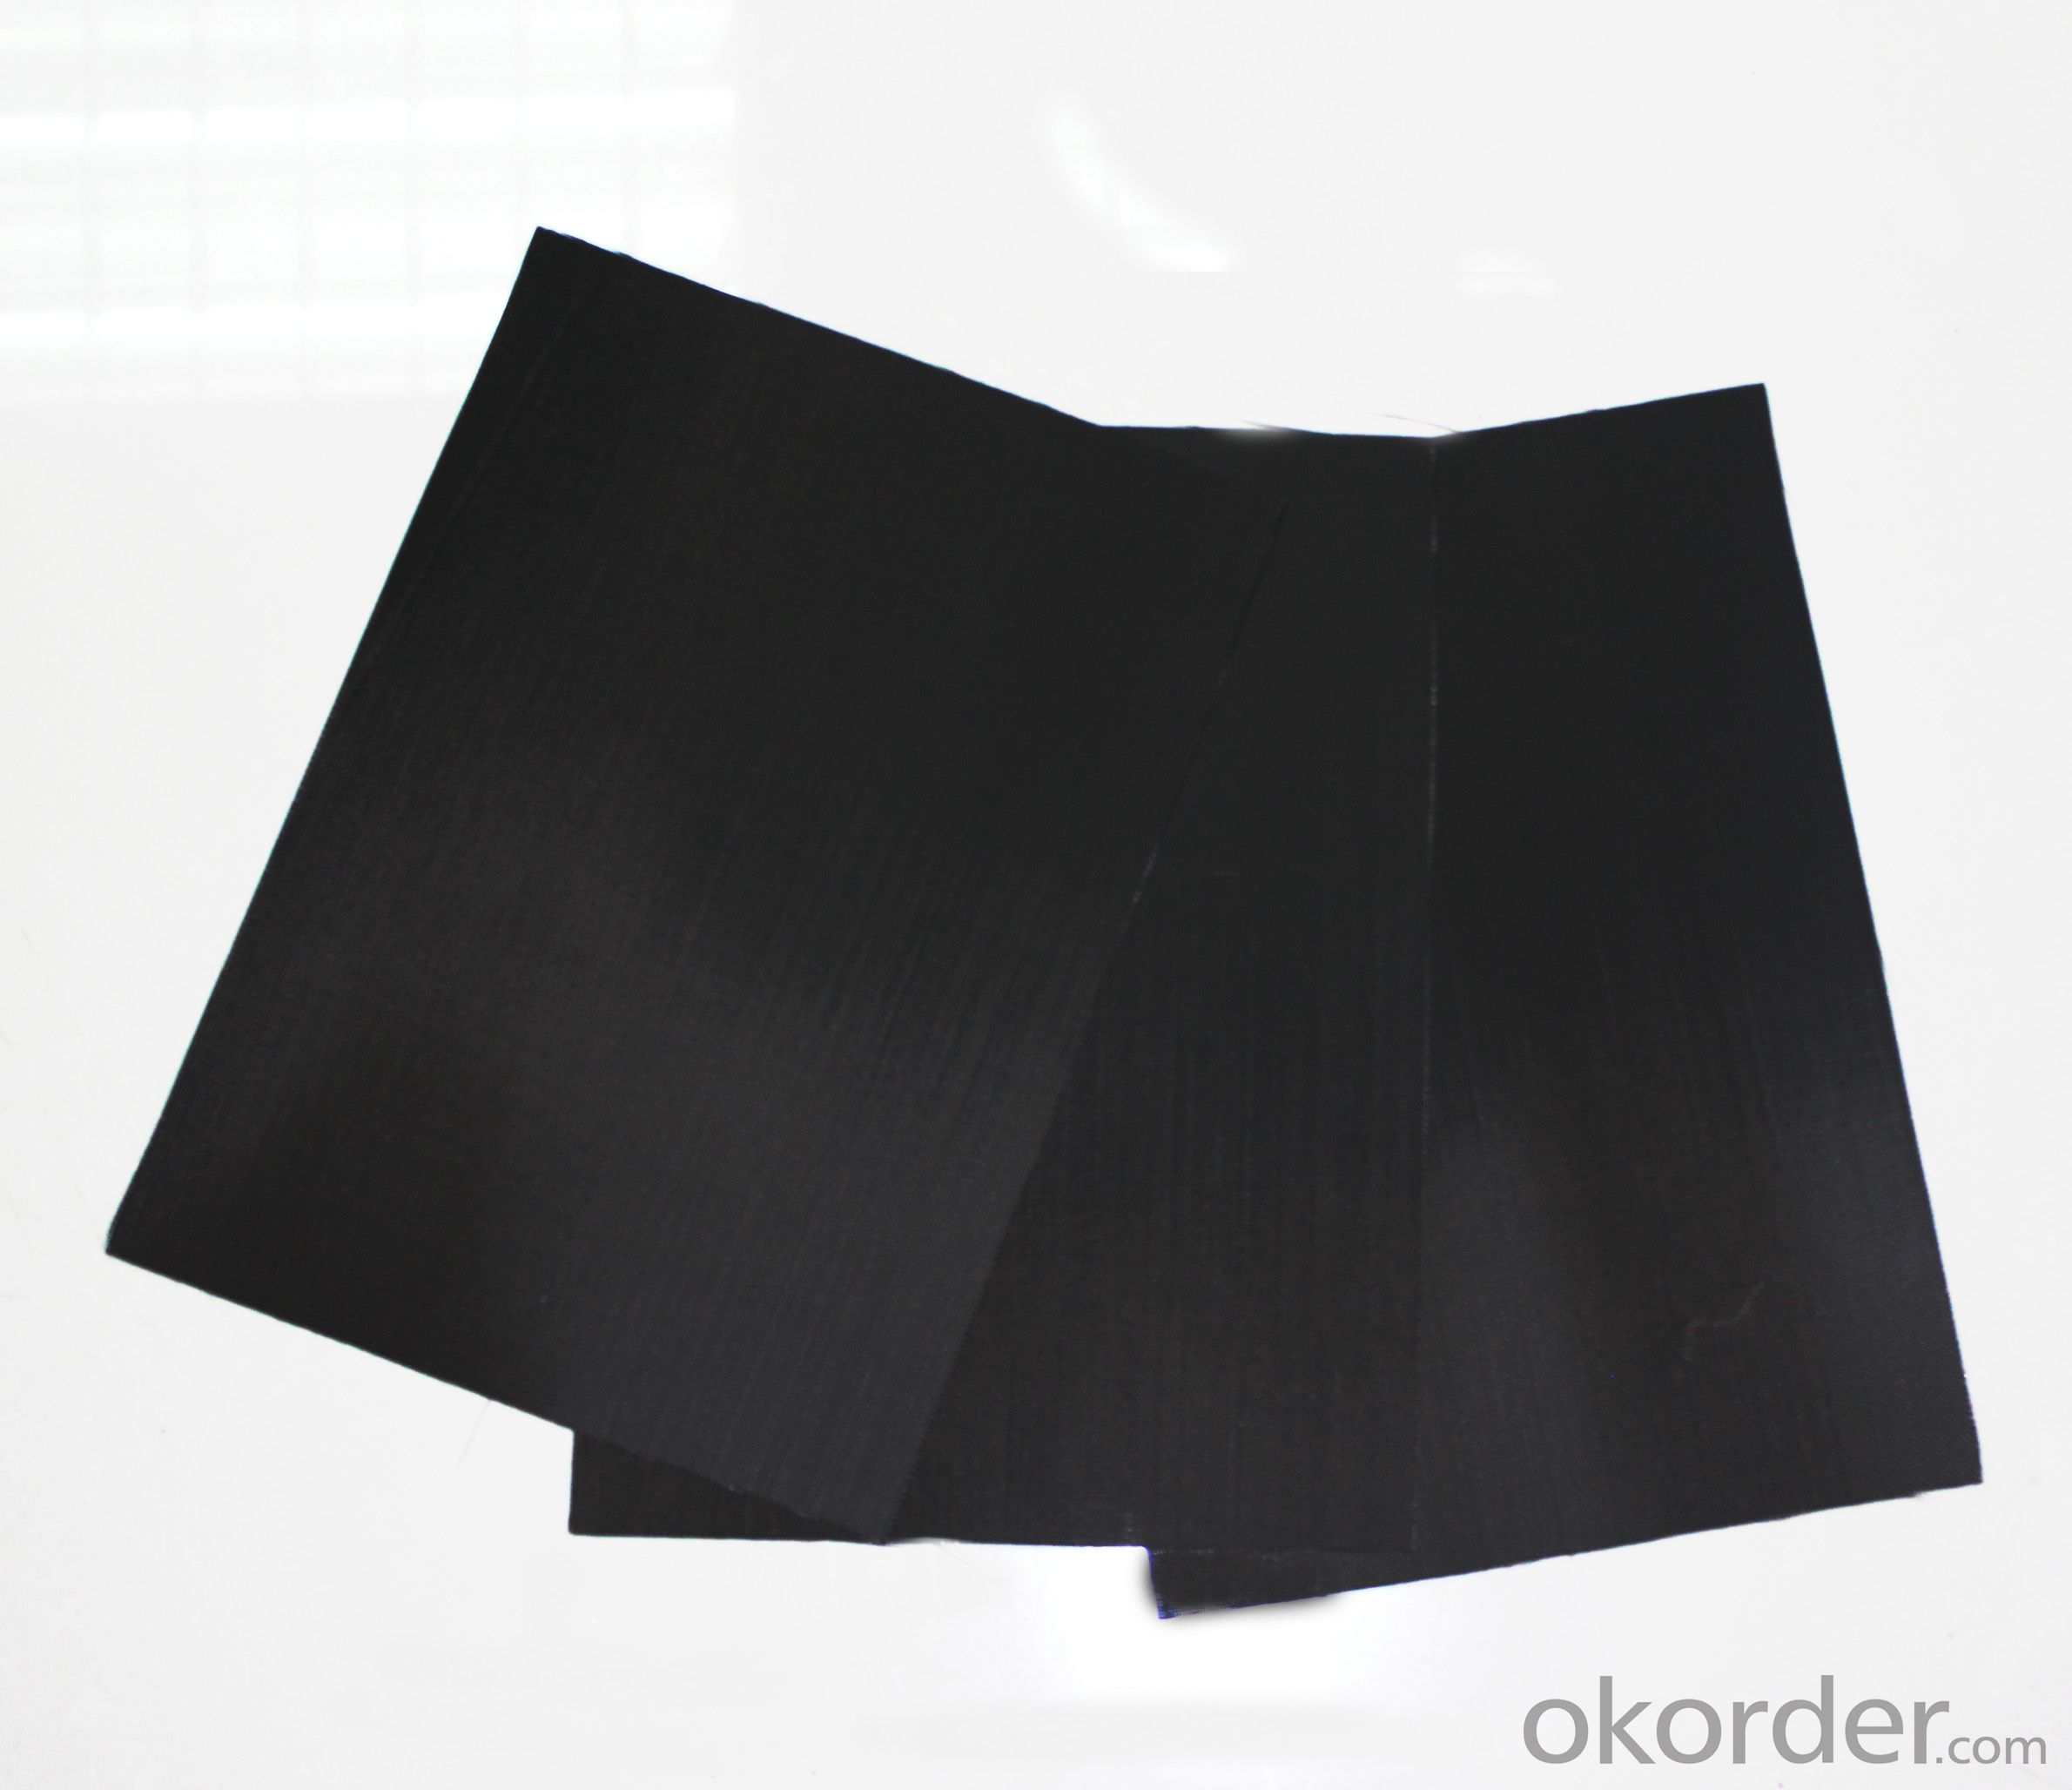 BLACK FIBERGLASS CLOTH-140GSM WITH REINFORCEMENT